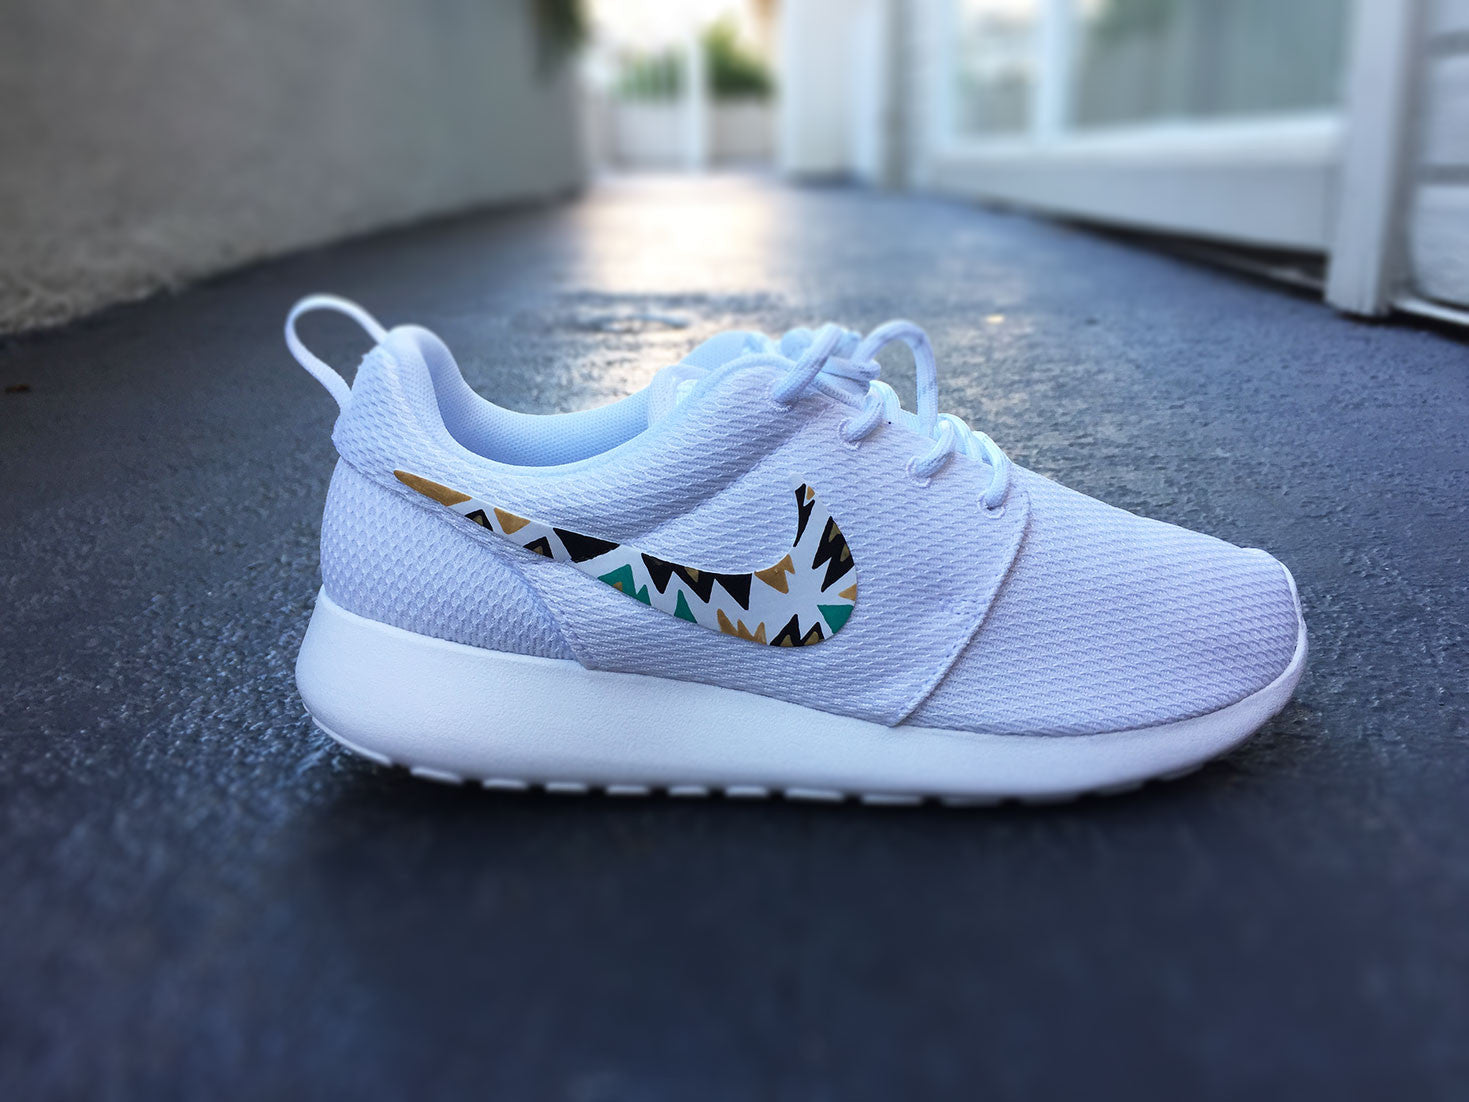 quality design e1a27 13792 Custom Nike Roshe Run sneakers for women, All white, Black and Gold,  Silver, tribal, triangle design, fashionable design